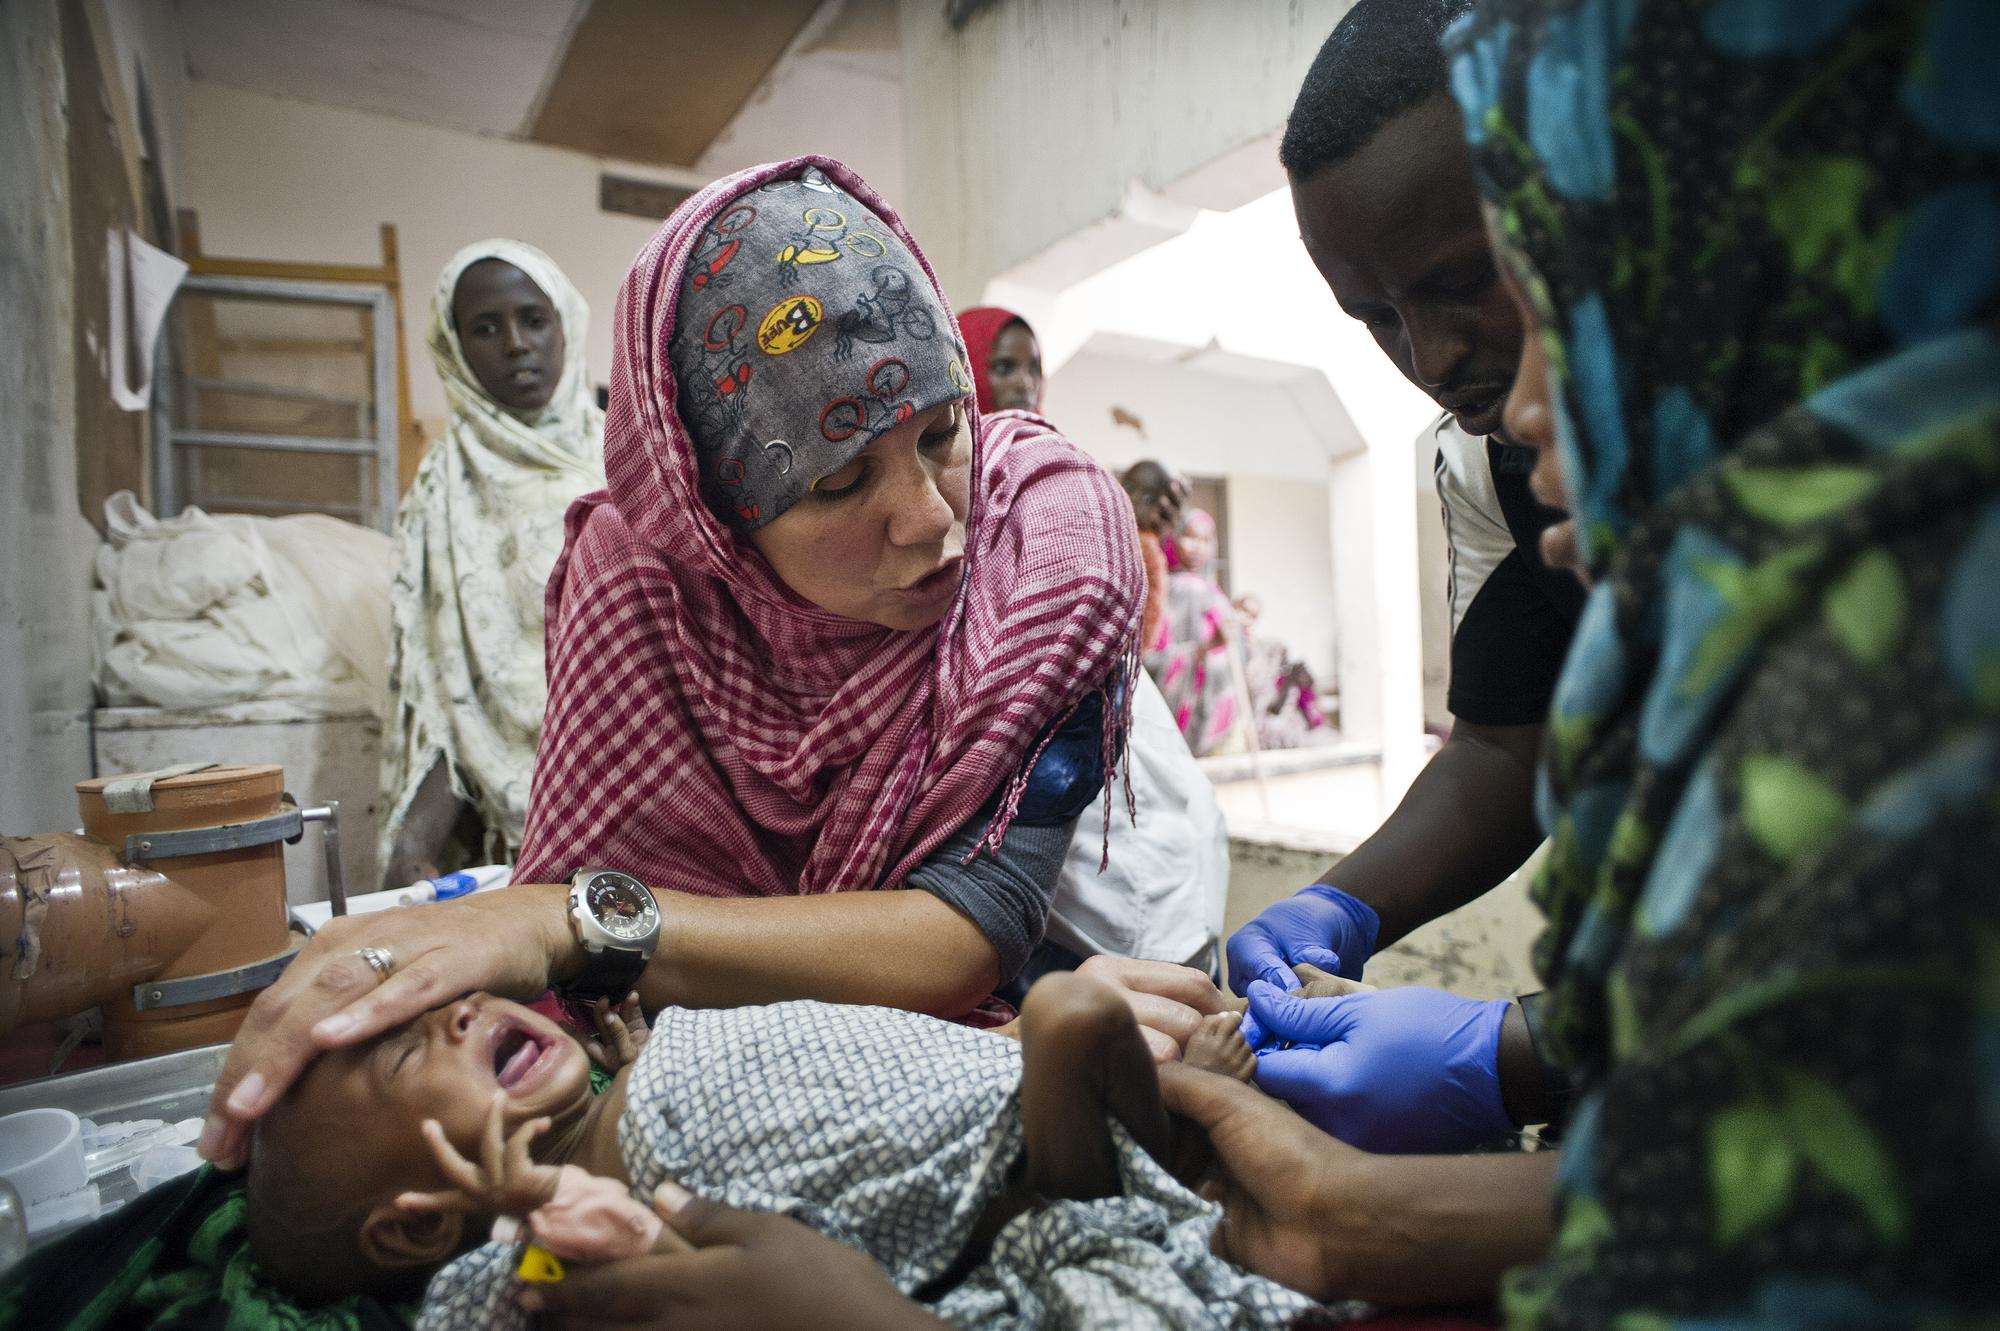 Somalia: A severely malnourished child is given an intravenous line.